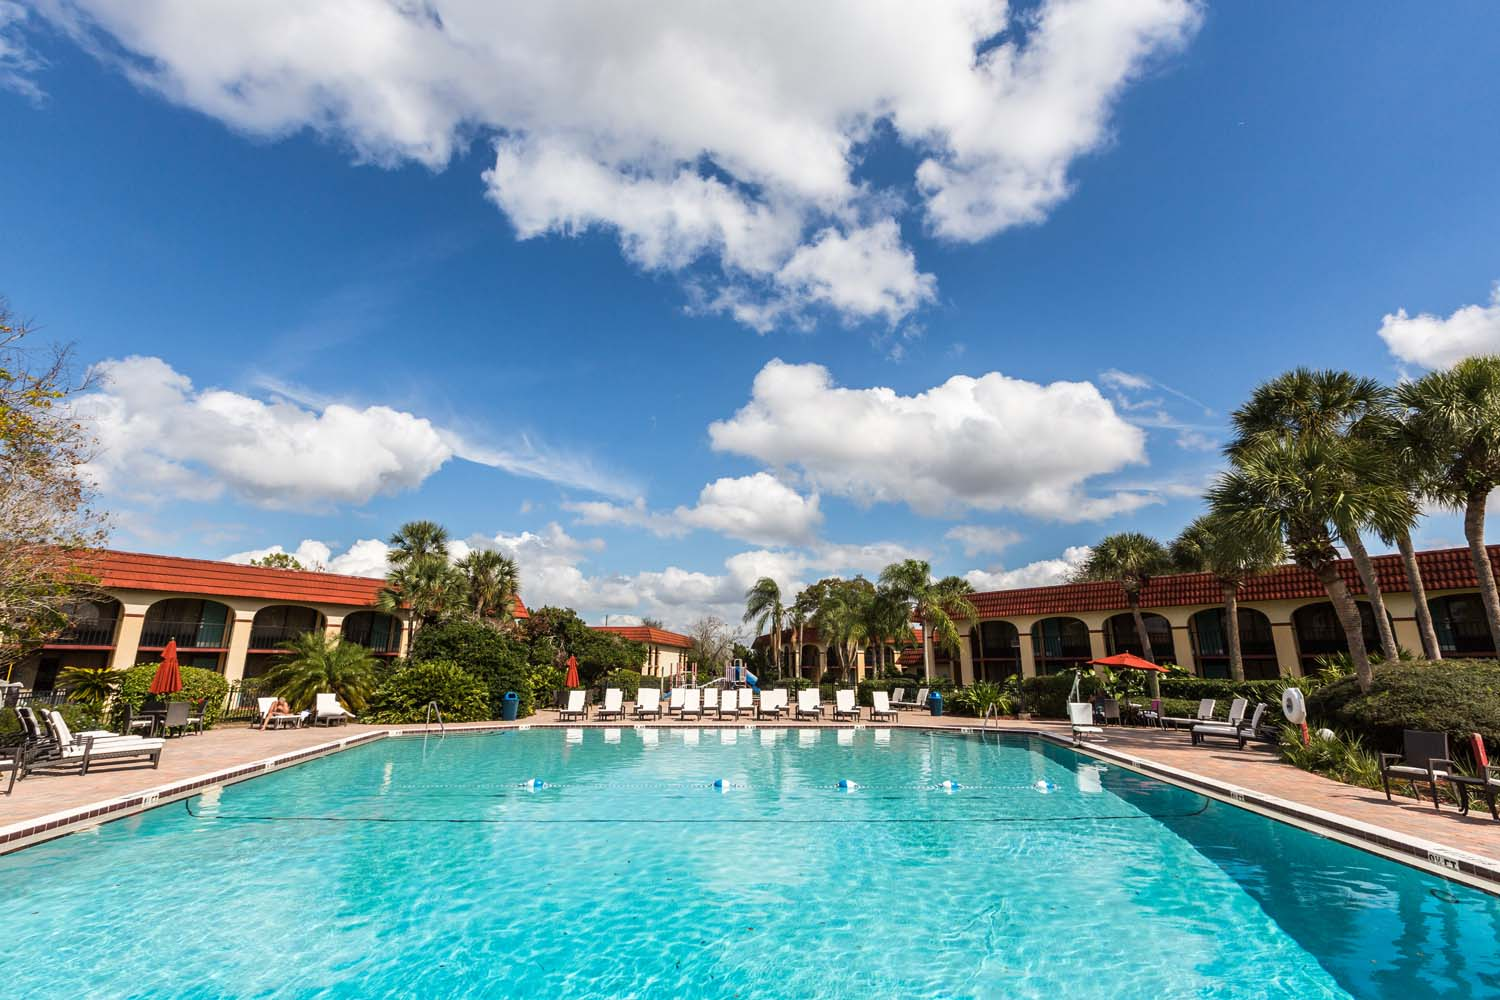 Hotel Deals Kissimmee Fl - Top 10 Cheap Hotels in Kissimmee from 33/night